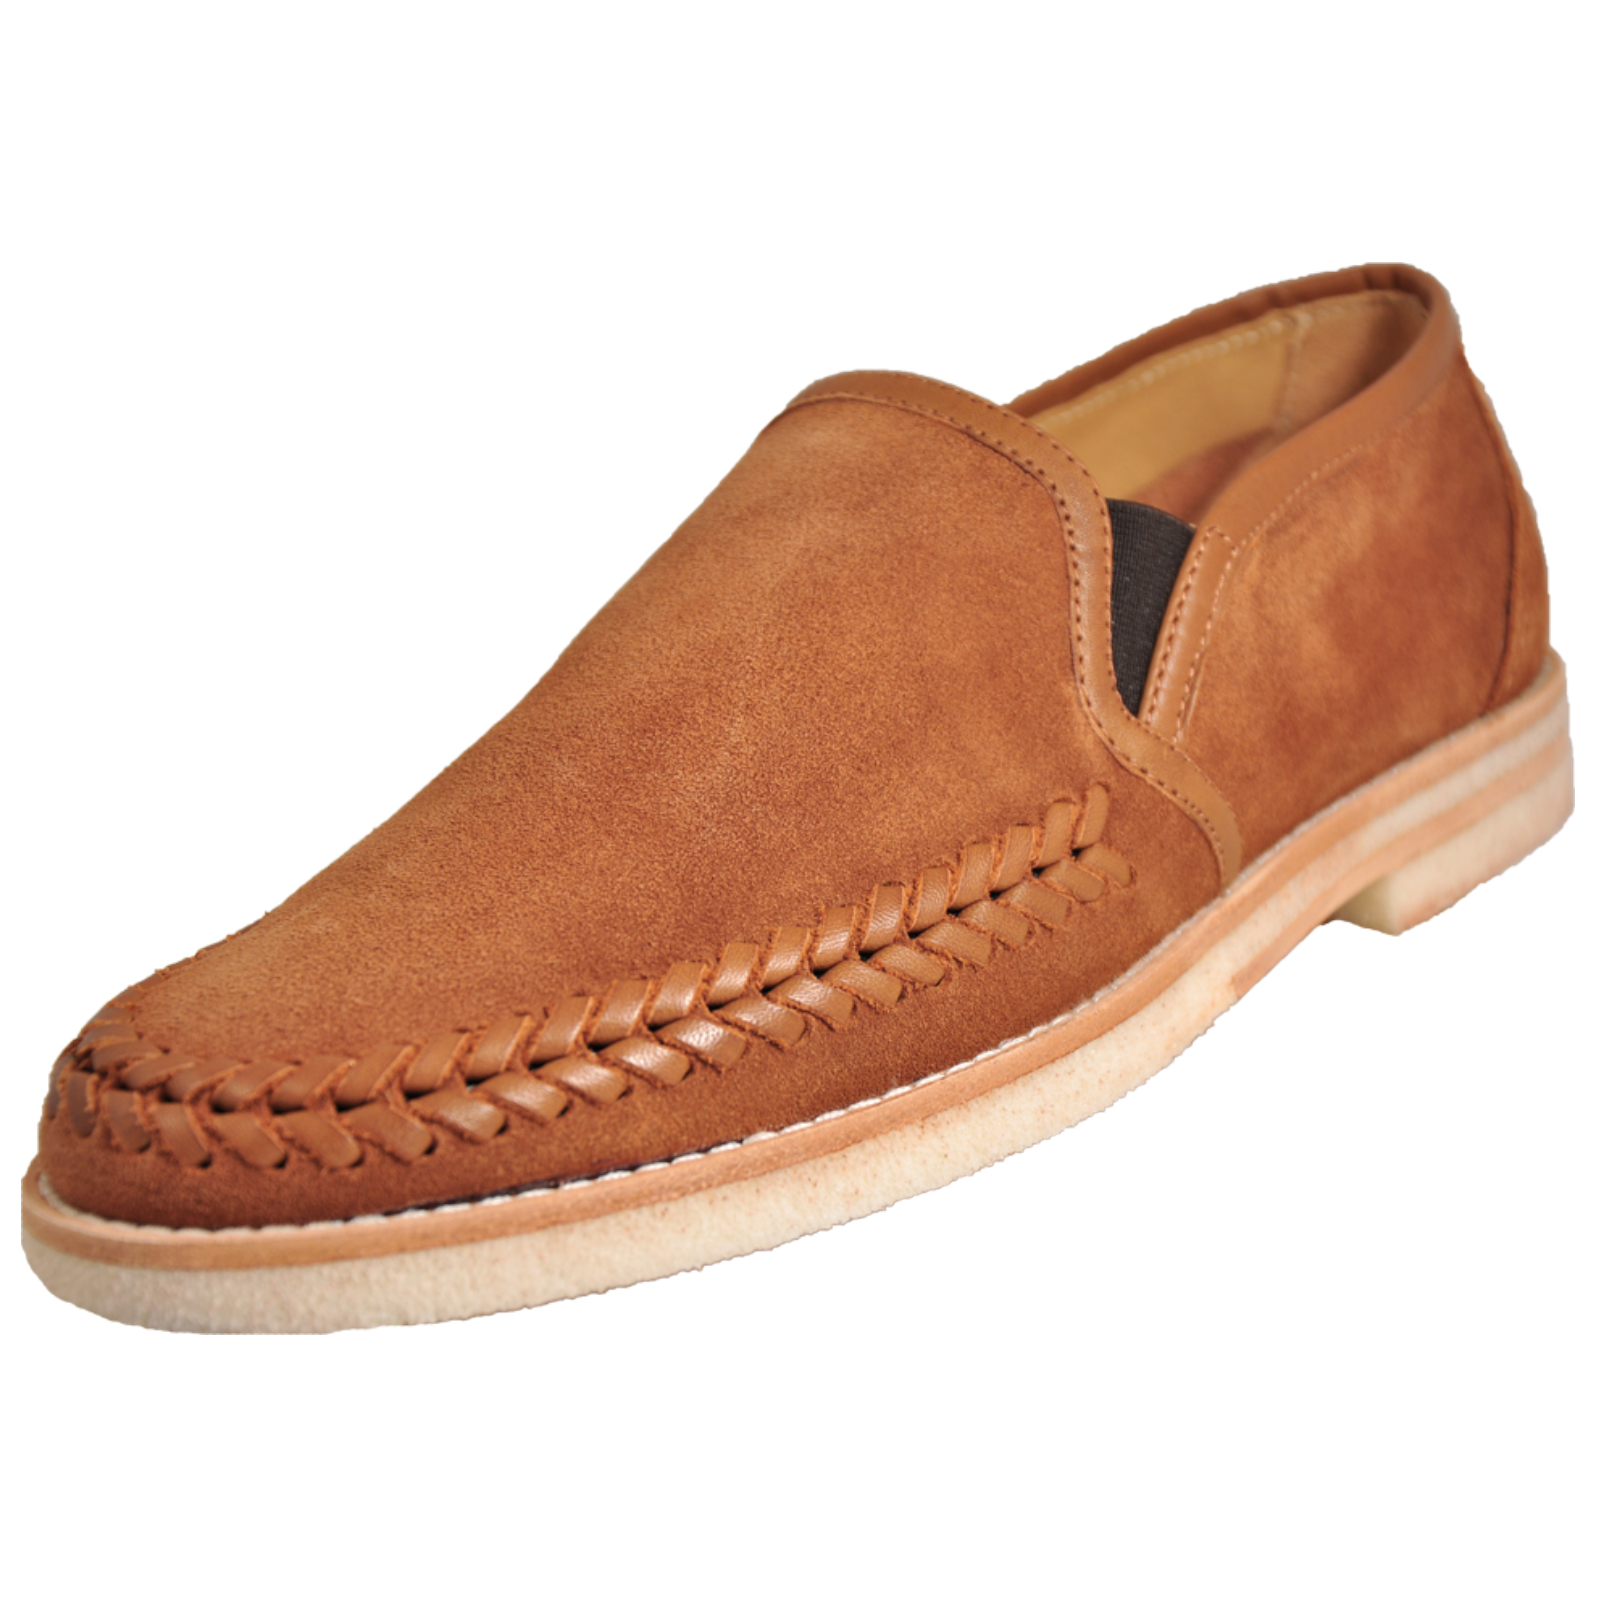 49a9cb850e9e4 H by Hudson Tangier Men's Formal Dress Slip On Loafer Suede Leather Shoes  Tan